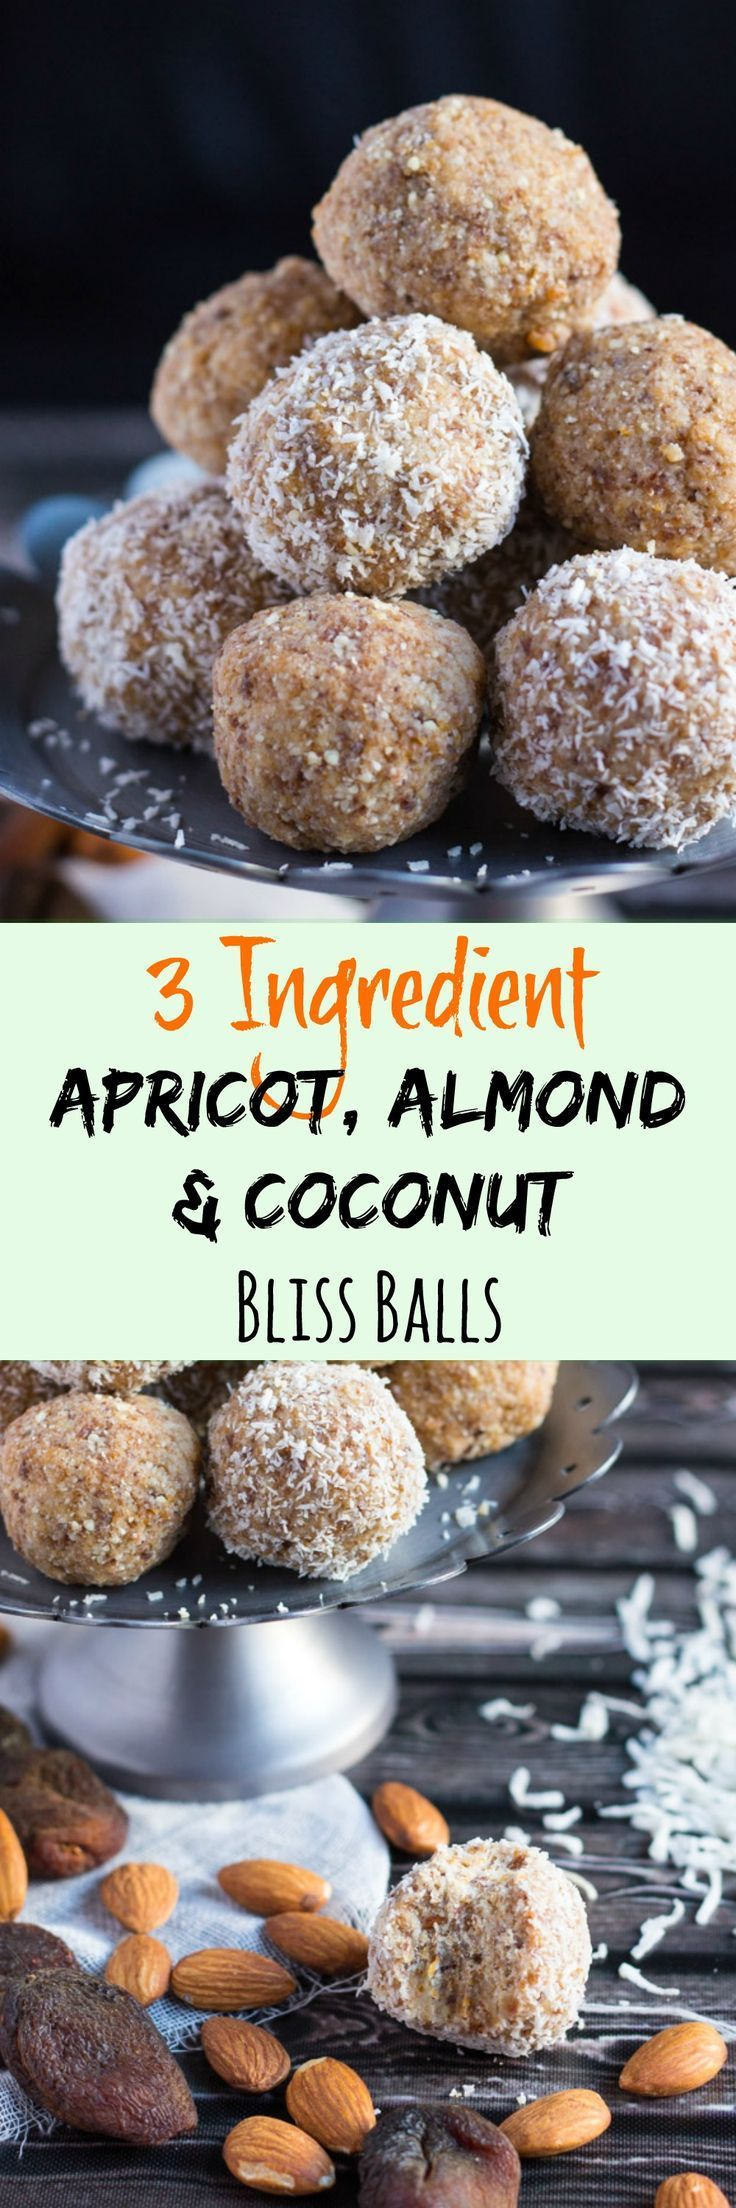 3 Ingredient Apricot, Almond & Coconut Bliss Balls.  Very quick to make, and great to keep on hand in the fridge for emergency snacking.